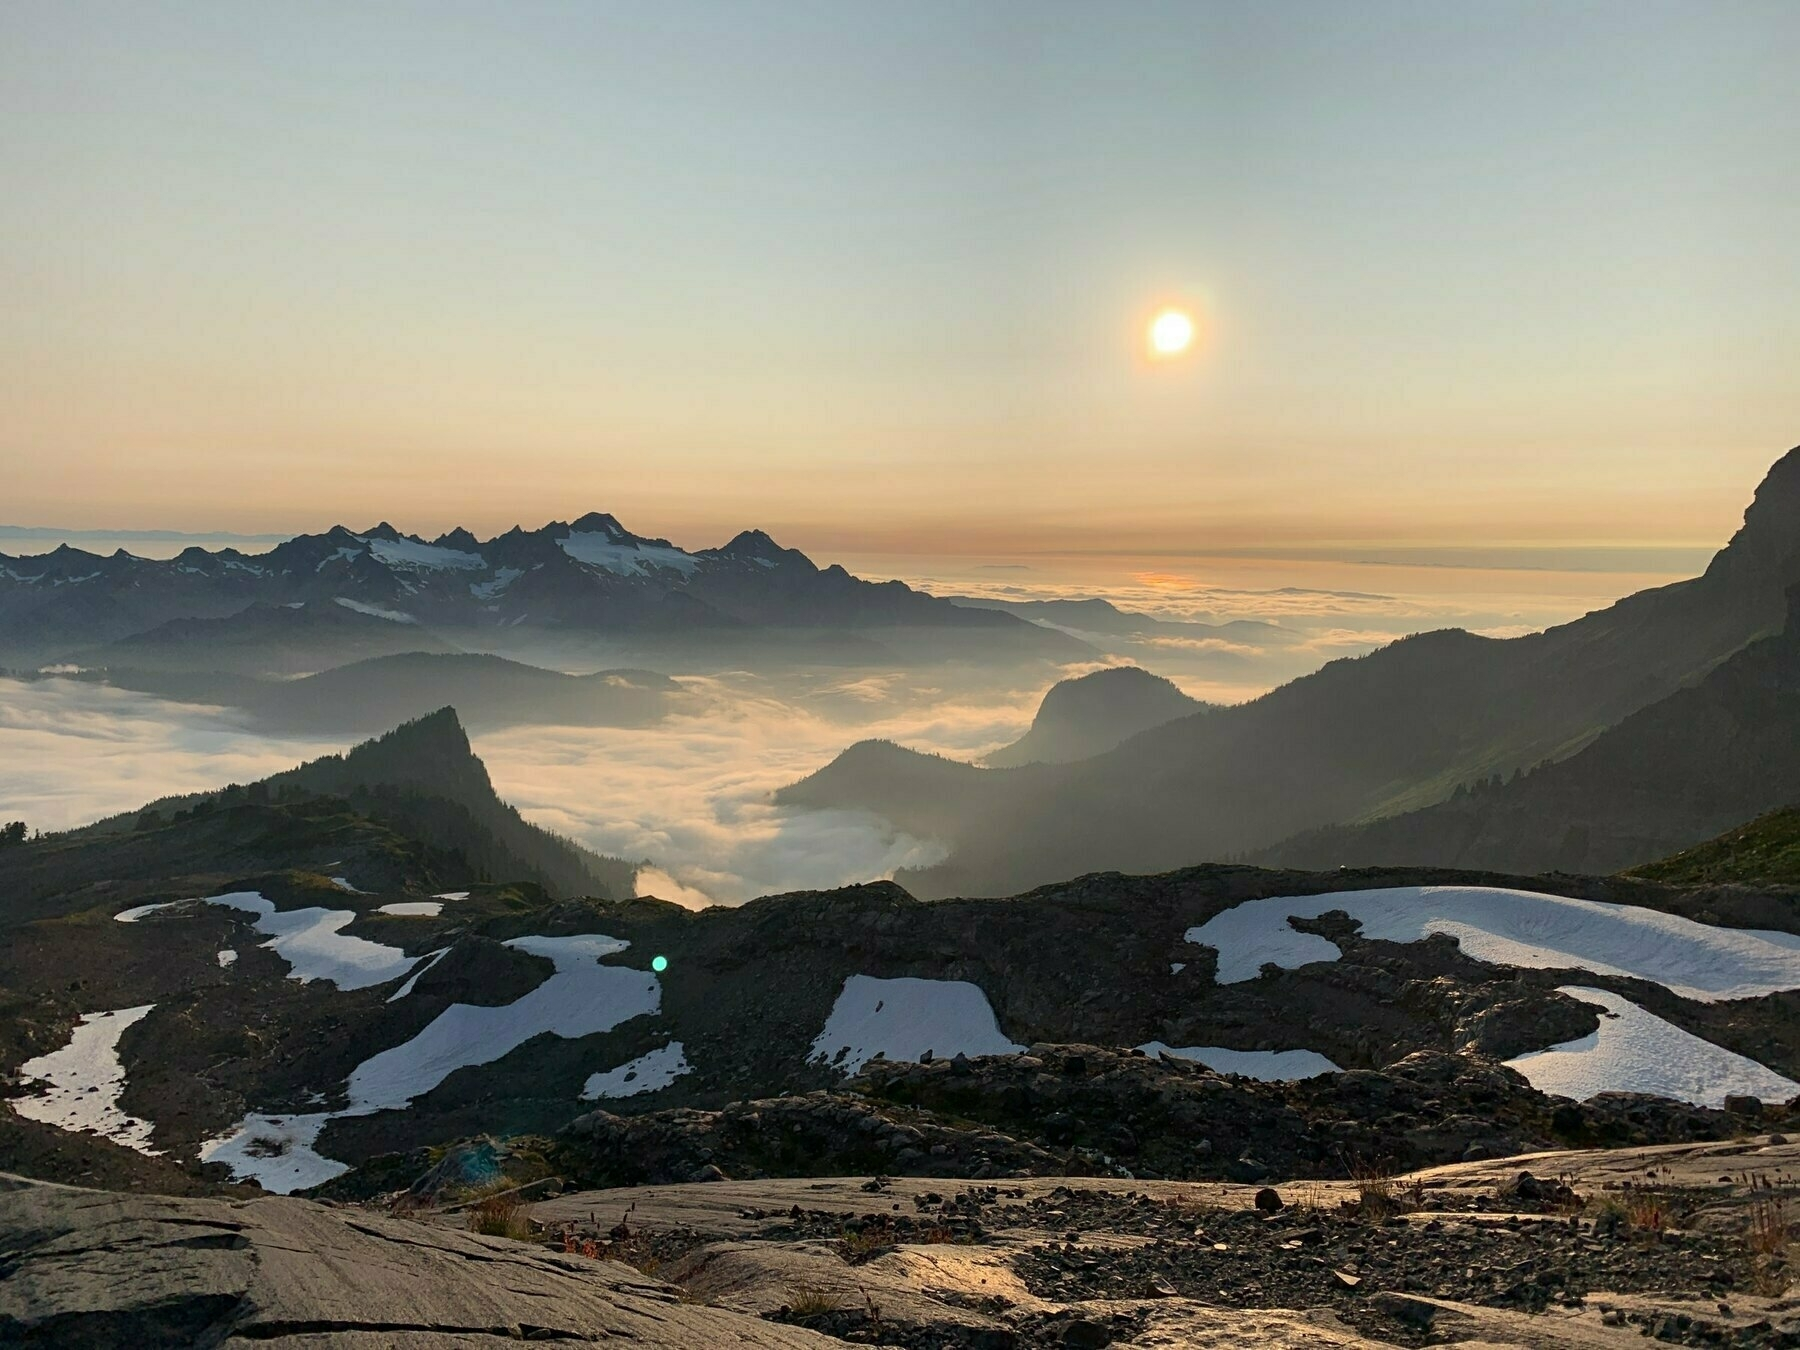 sunset view of mountains and mist at sunset from ½ way up Mt Baker in Washington, US